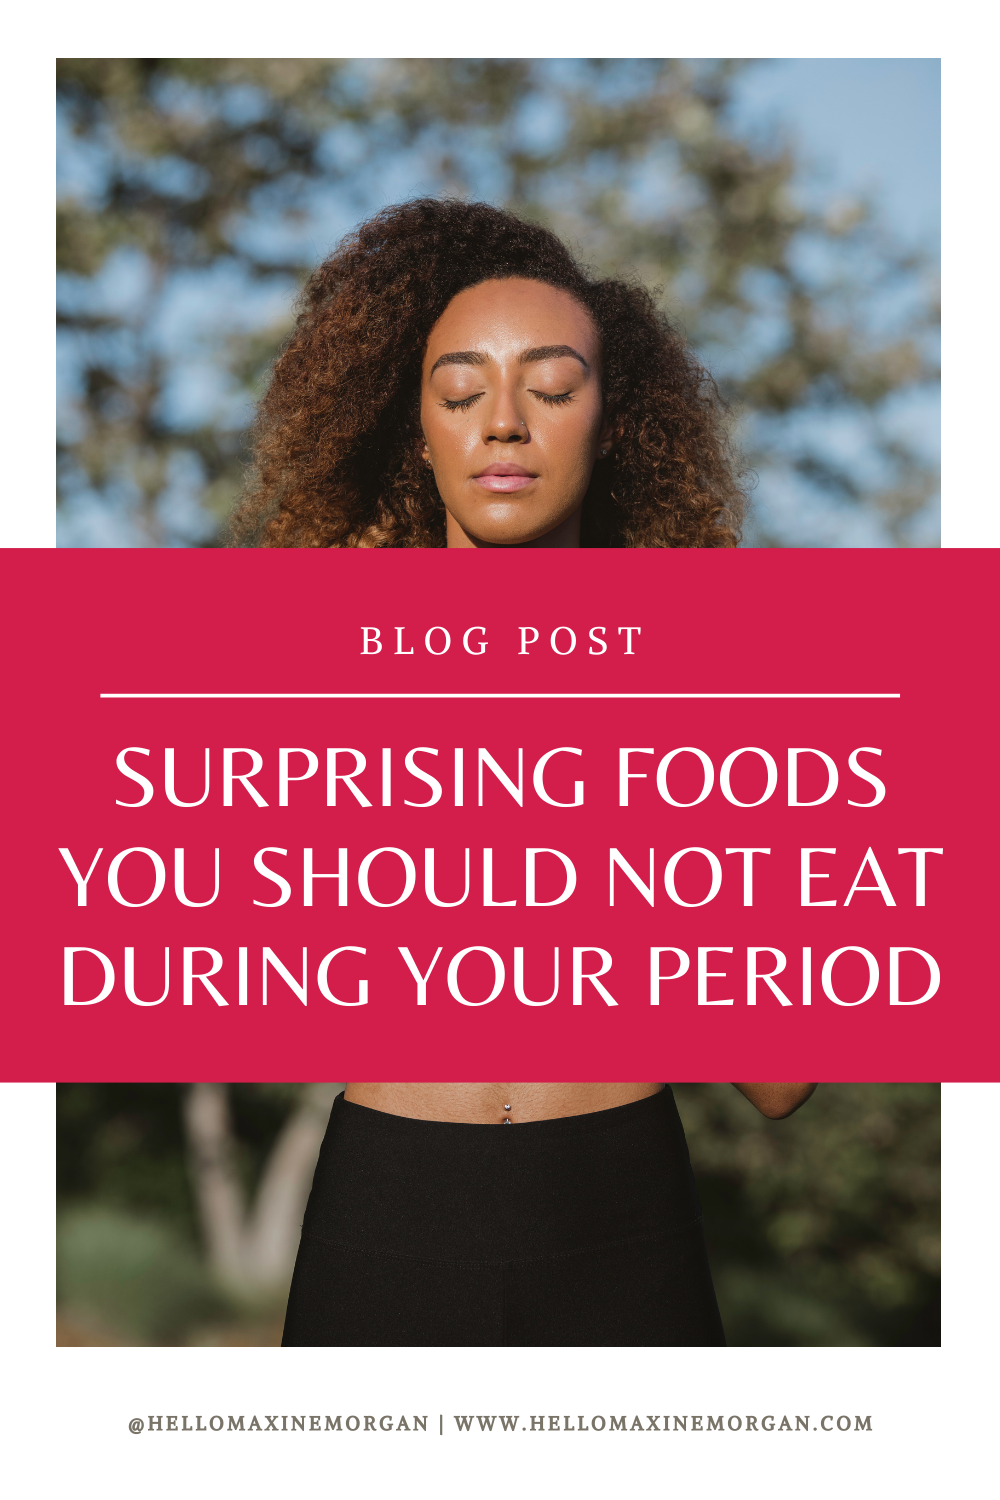 Surprising Foods You Should Not Eat During Your Period